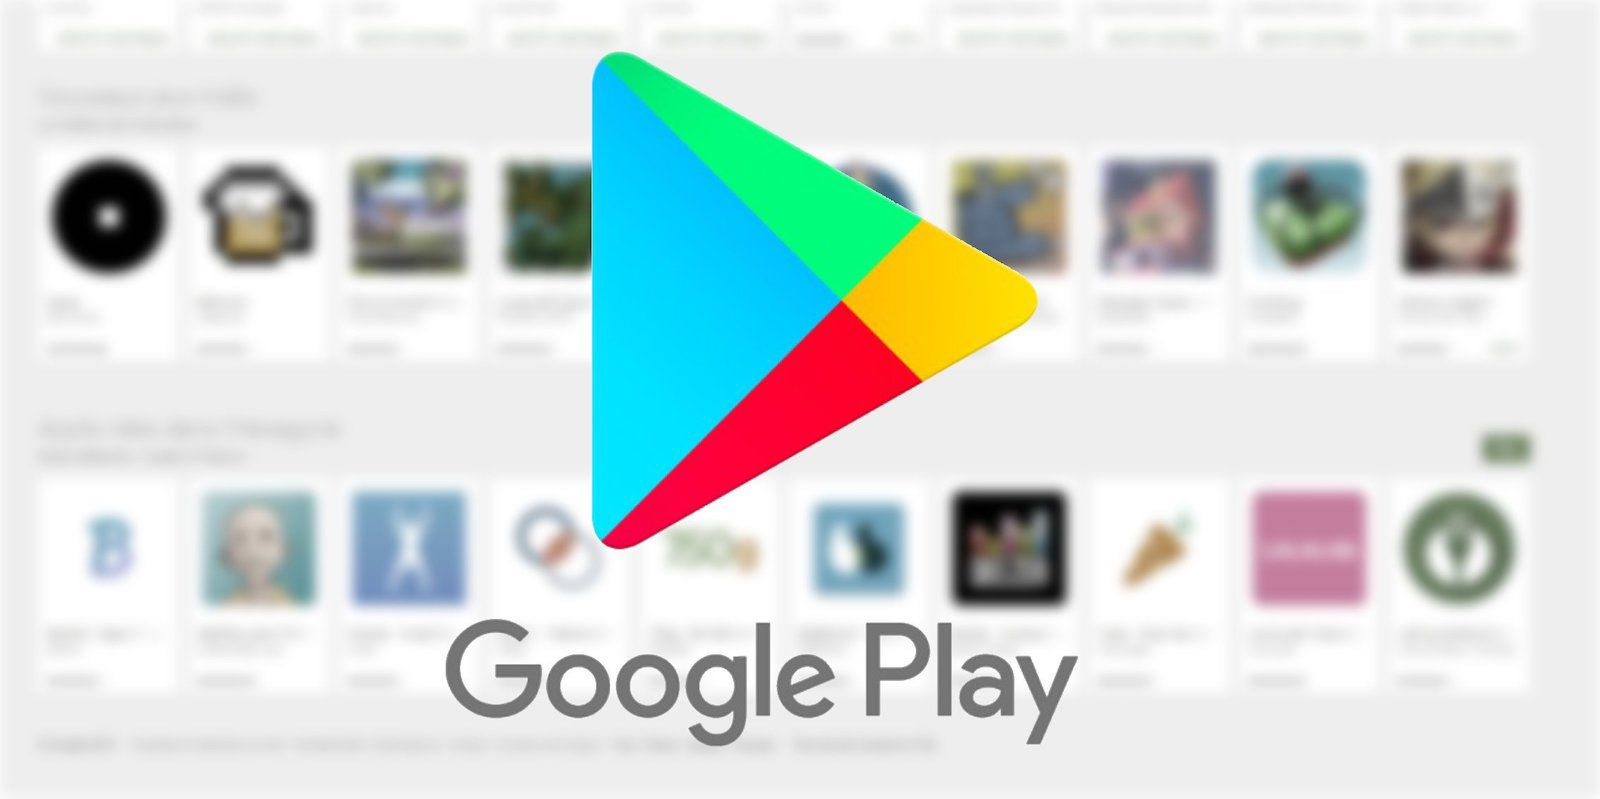 photo of Google Reportedly Plans to Update Play Store Guidelines to Emphasize Use of Its Billing System With 30% Fee image